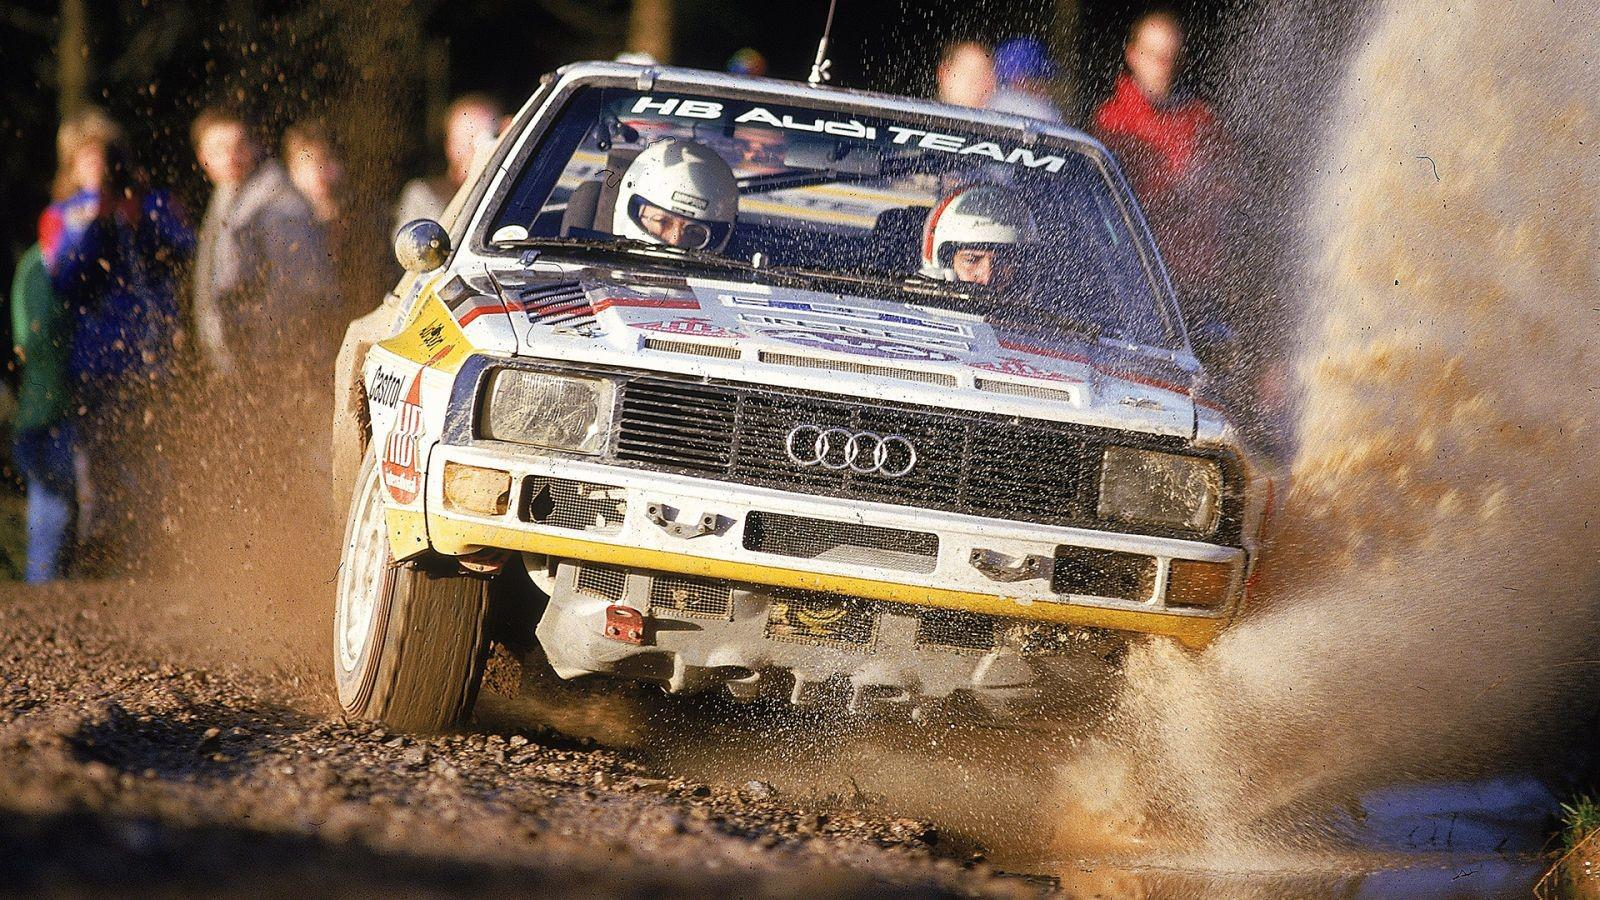 audi-quattro-40-years-in-the-spotlight-autoworld-brussels-1336-1.jpeg